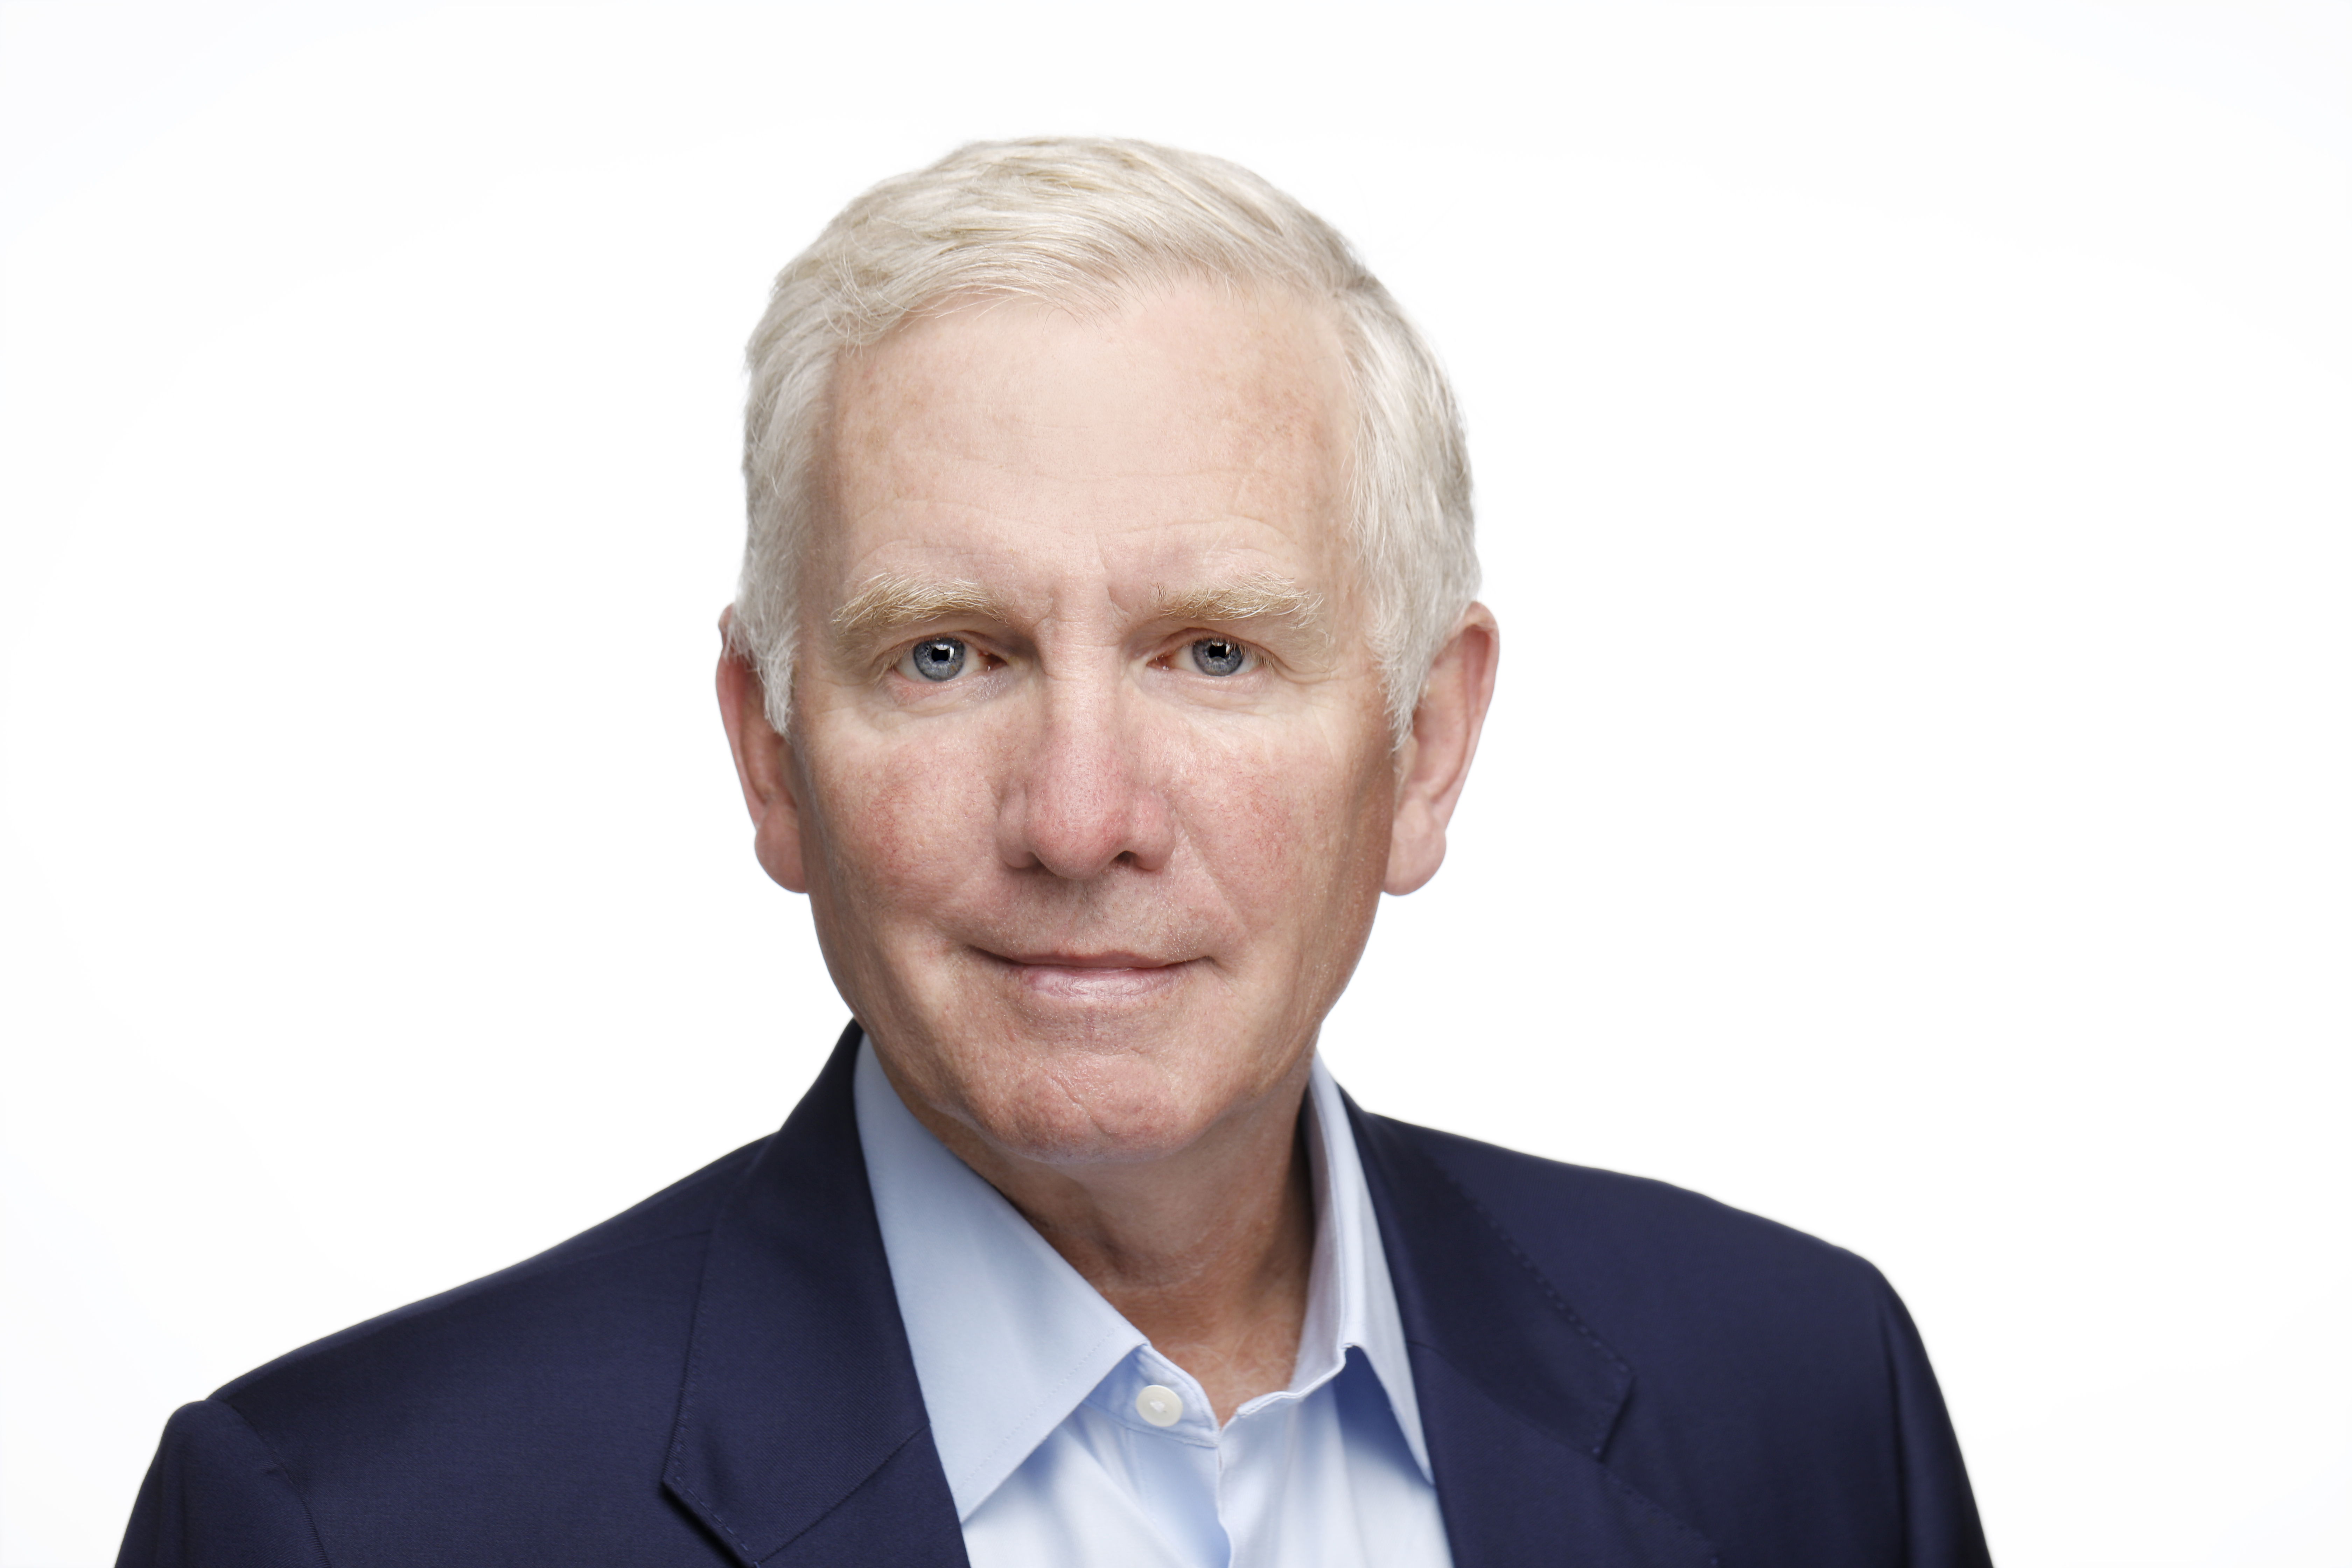 BRUCE ANDERSON, CHAIRMAN, ABACUS DATA